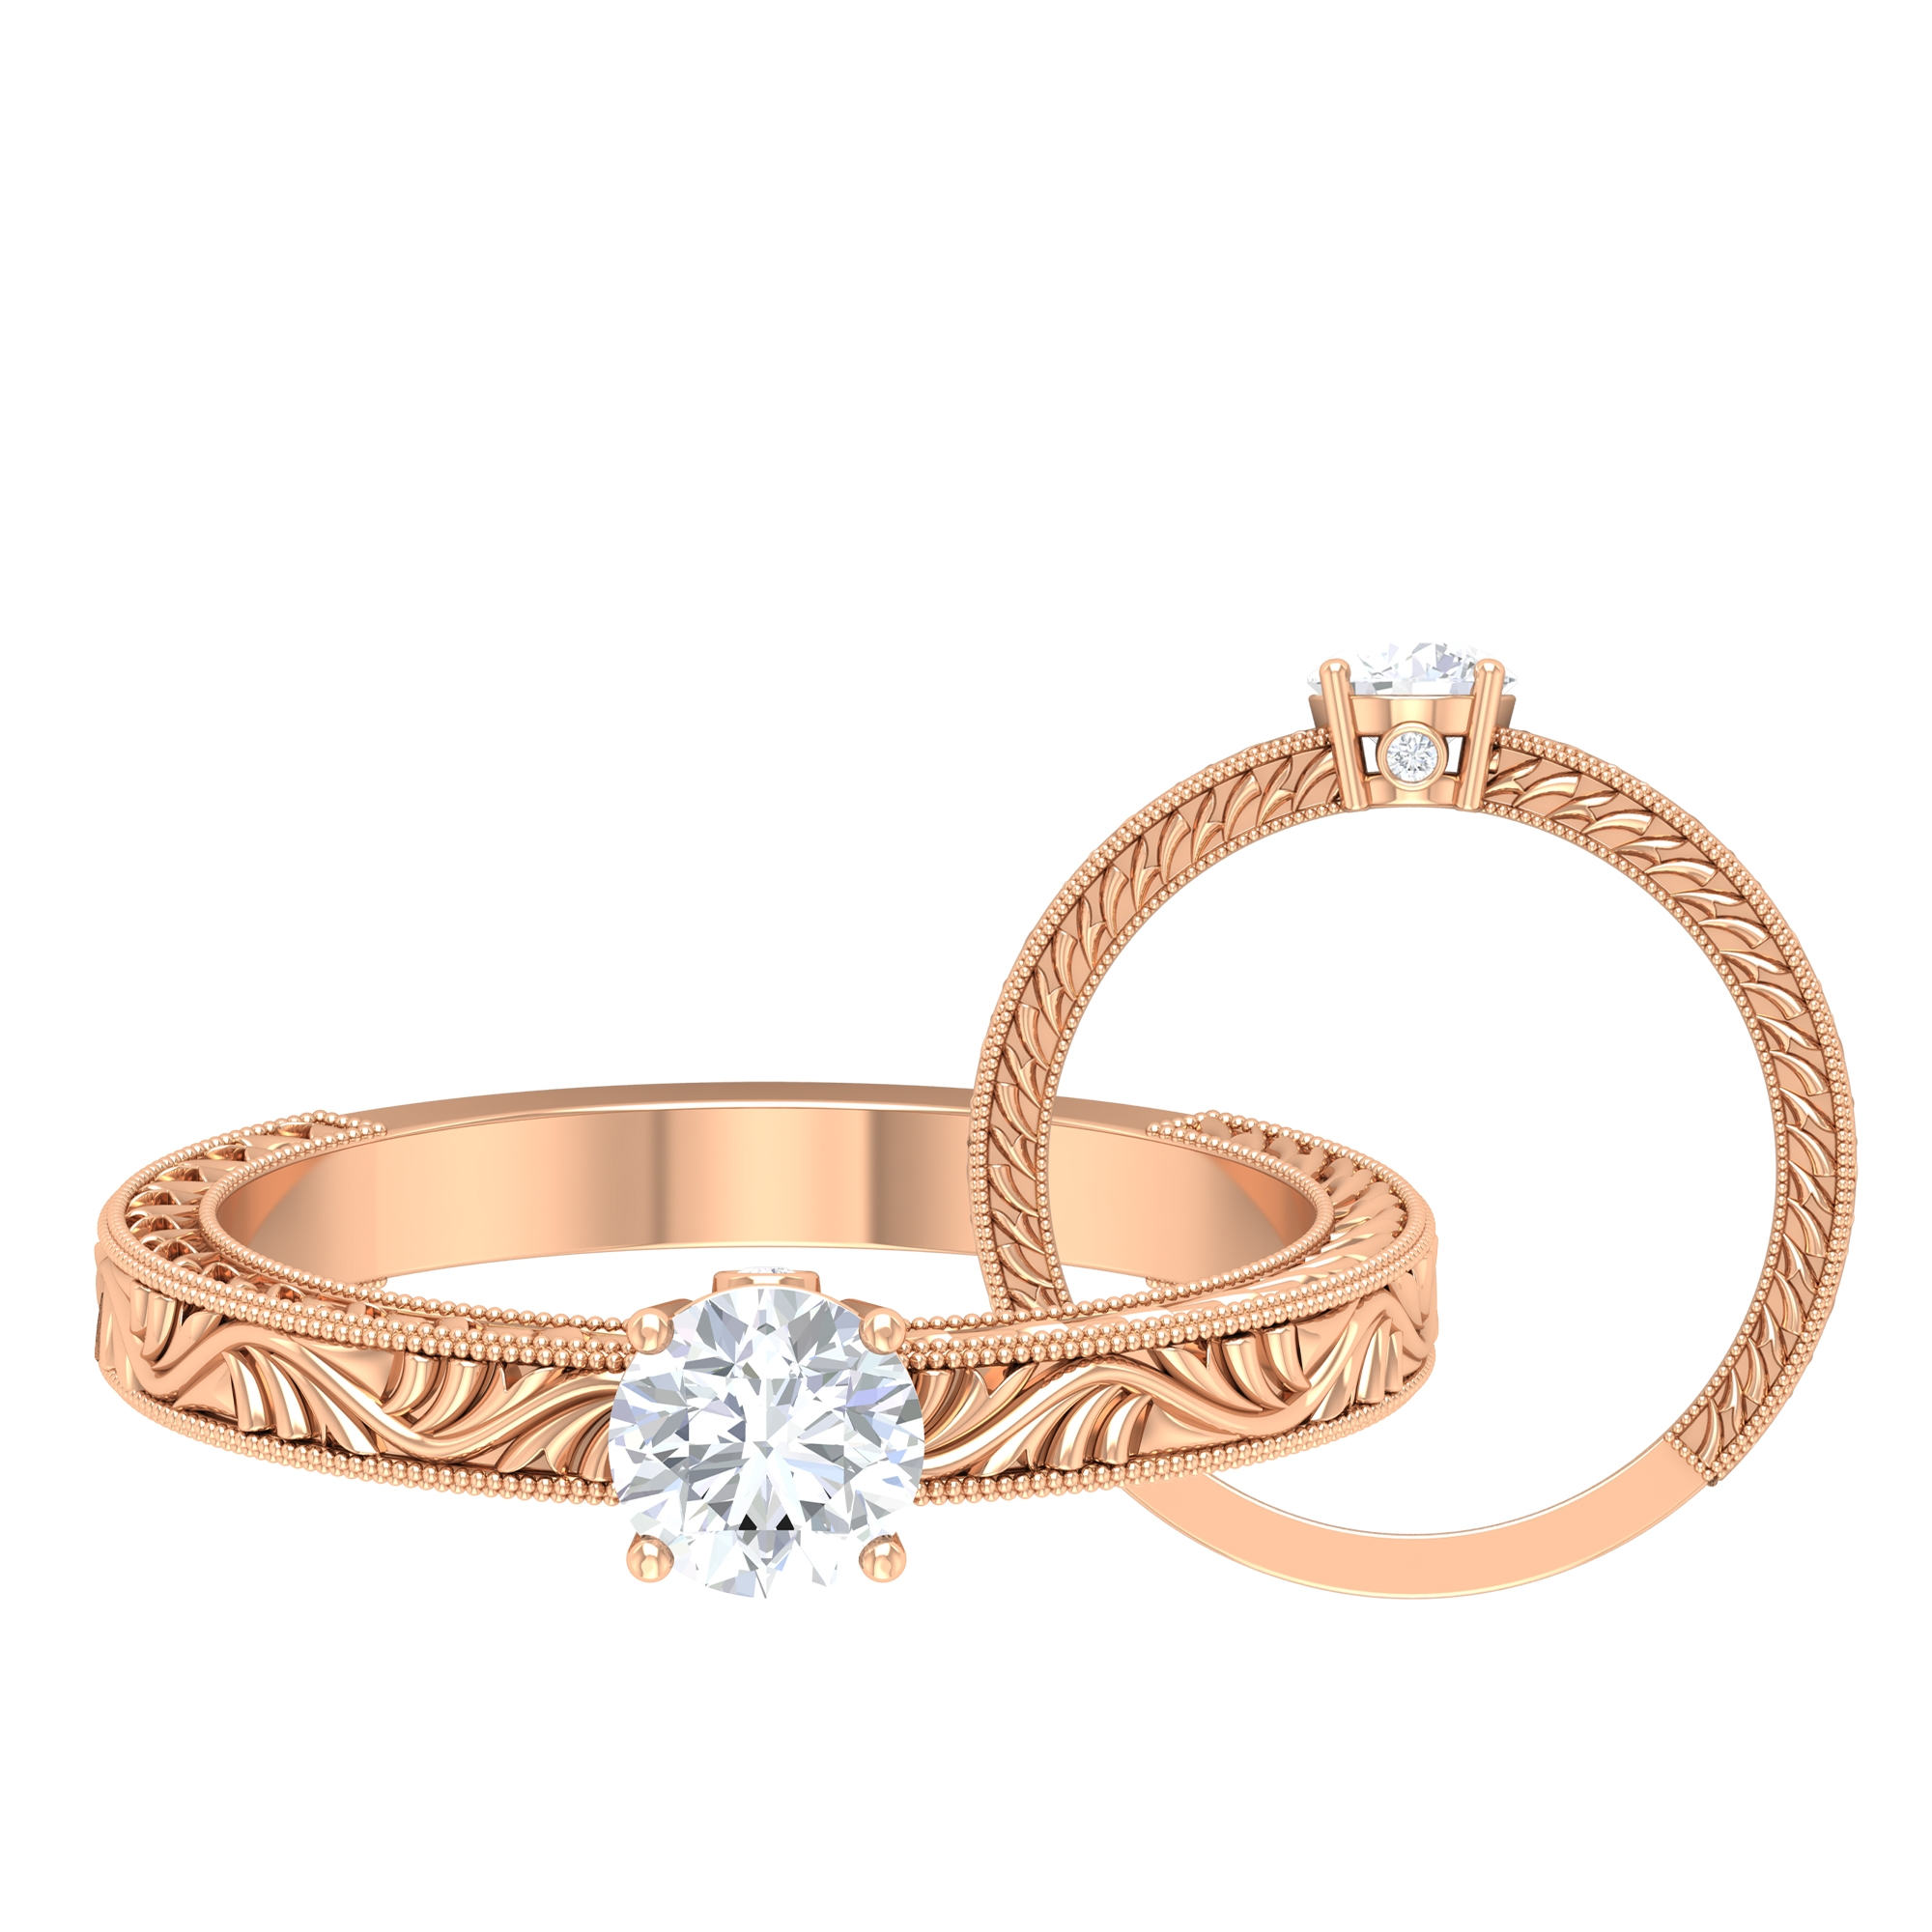 1/2 CT Round Cut Diamond Solitaire Ring in Prong Setting and Surprise Style with Engraved Details